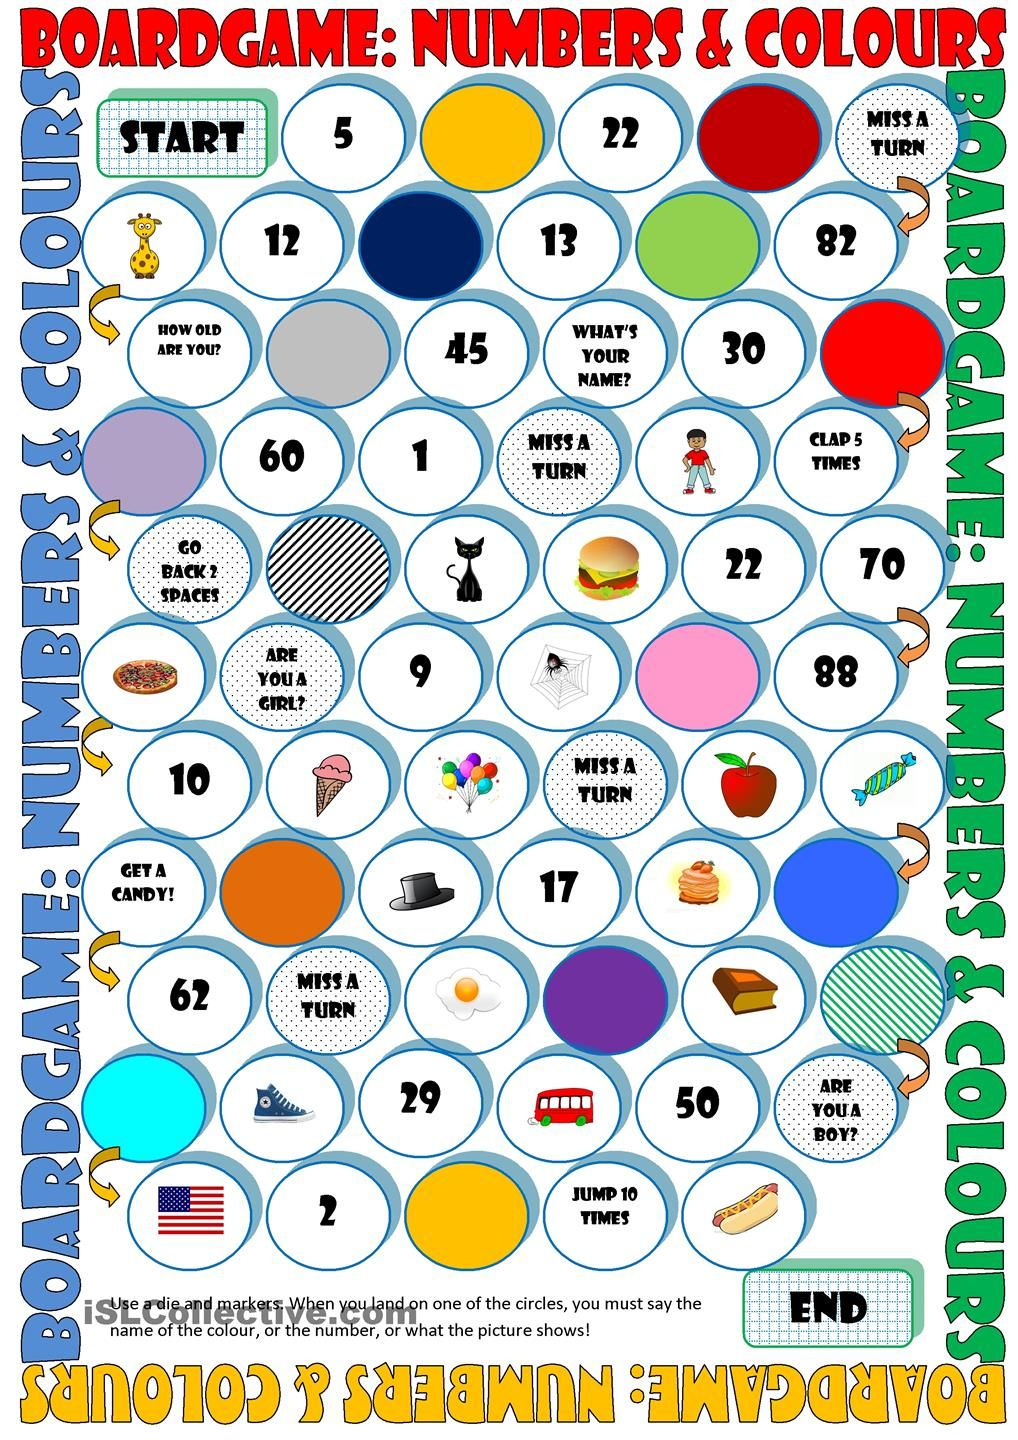 Game board colors - Board Game Numbers Colours